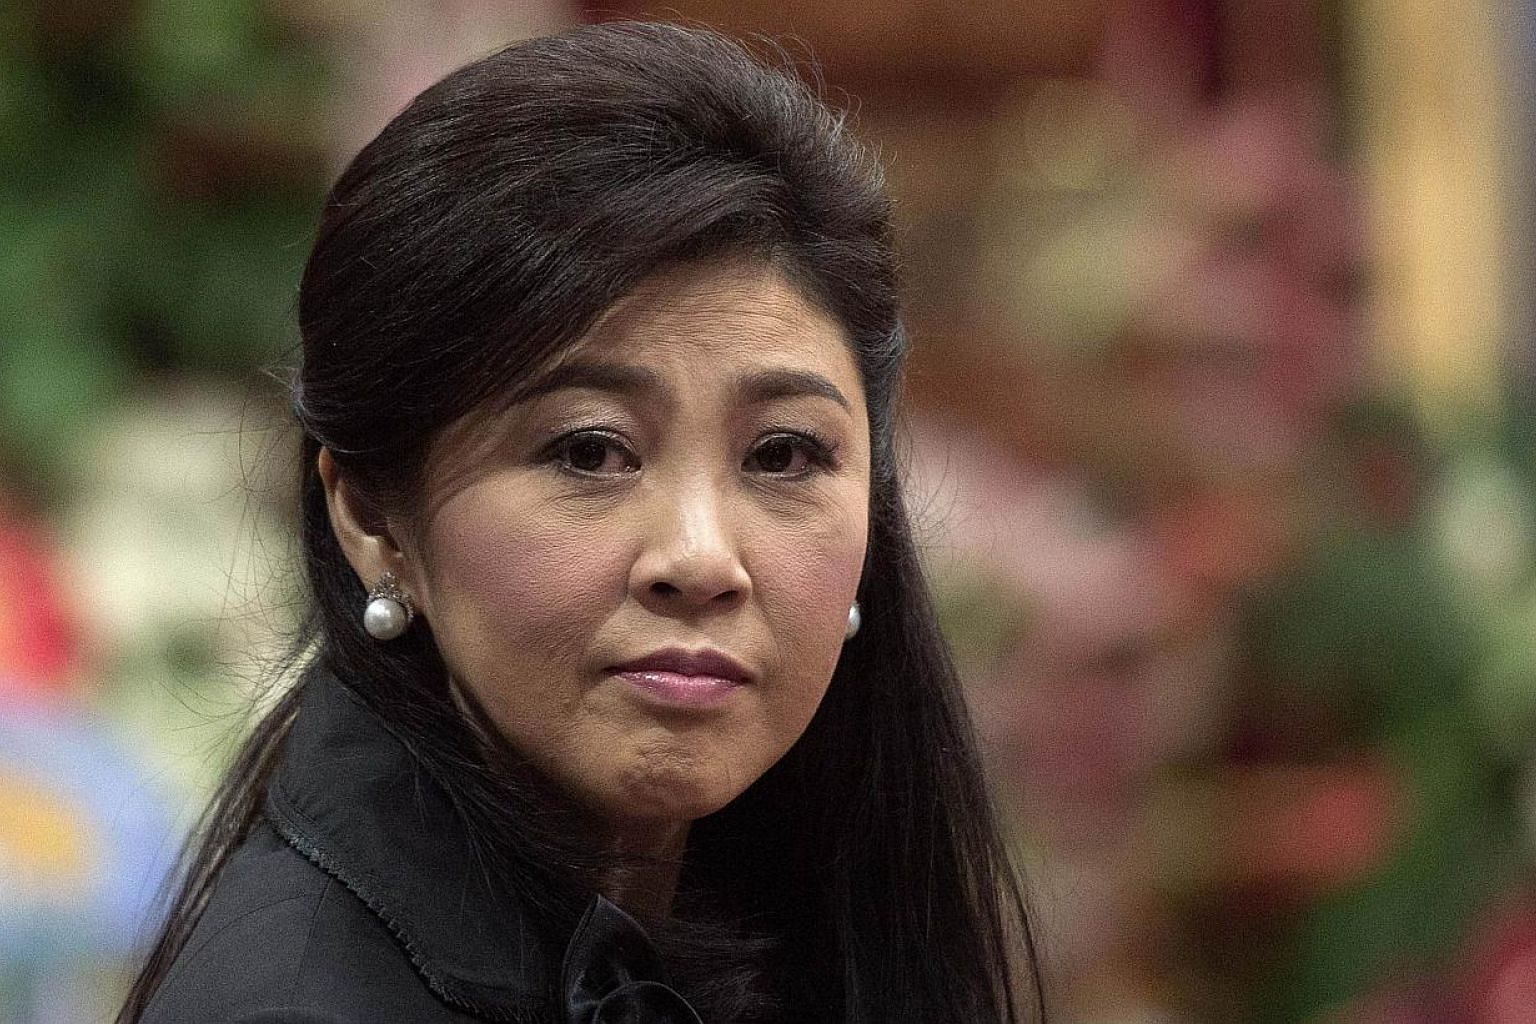 Thailand's first female prime minister Yingluck Shinawatra (above) is expected to appear in court today for the start of a negligence trial which could see her jailed for a decade. -- PHOTO: AFP